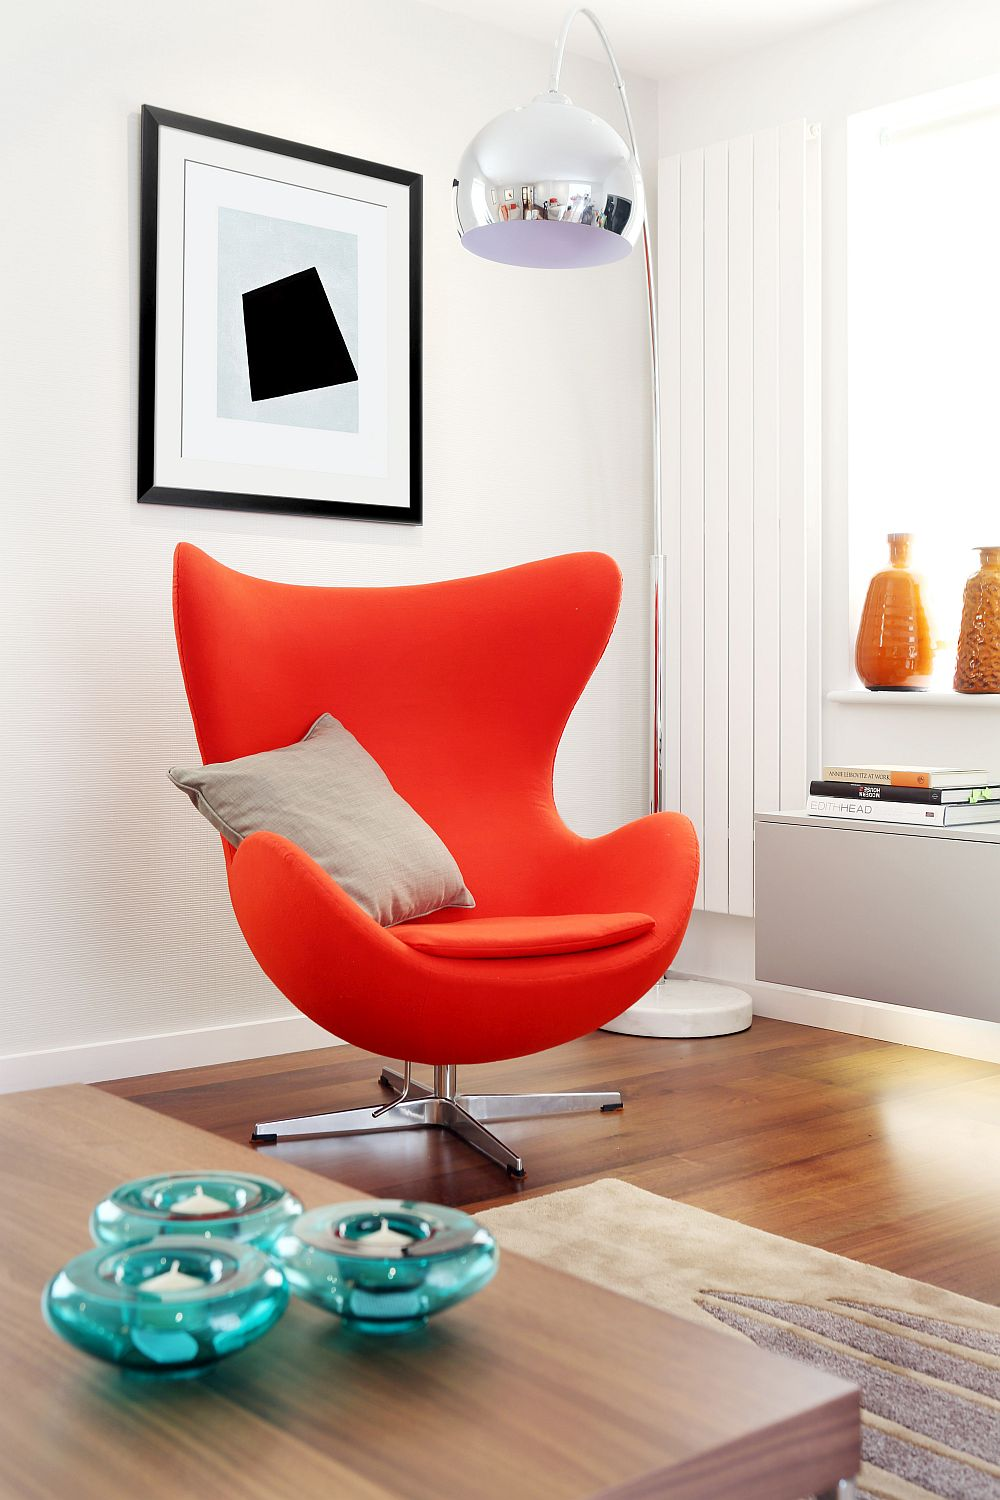 Arne Jacobsen Egg Chair brings color to the lovely TV Room